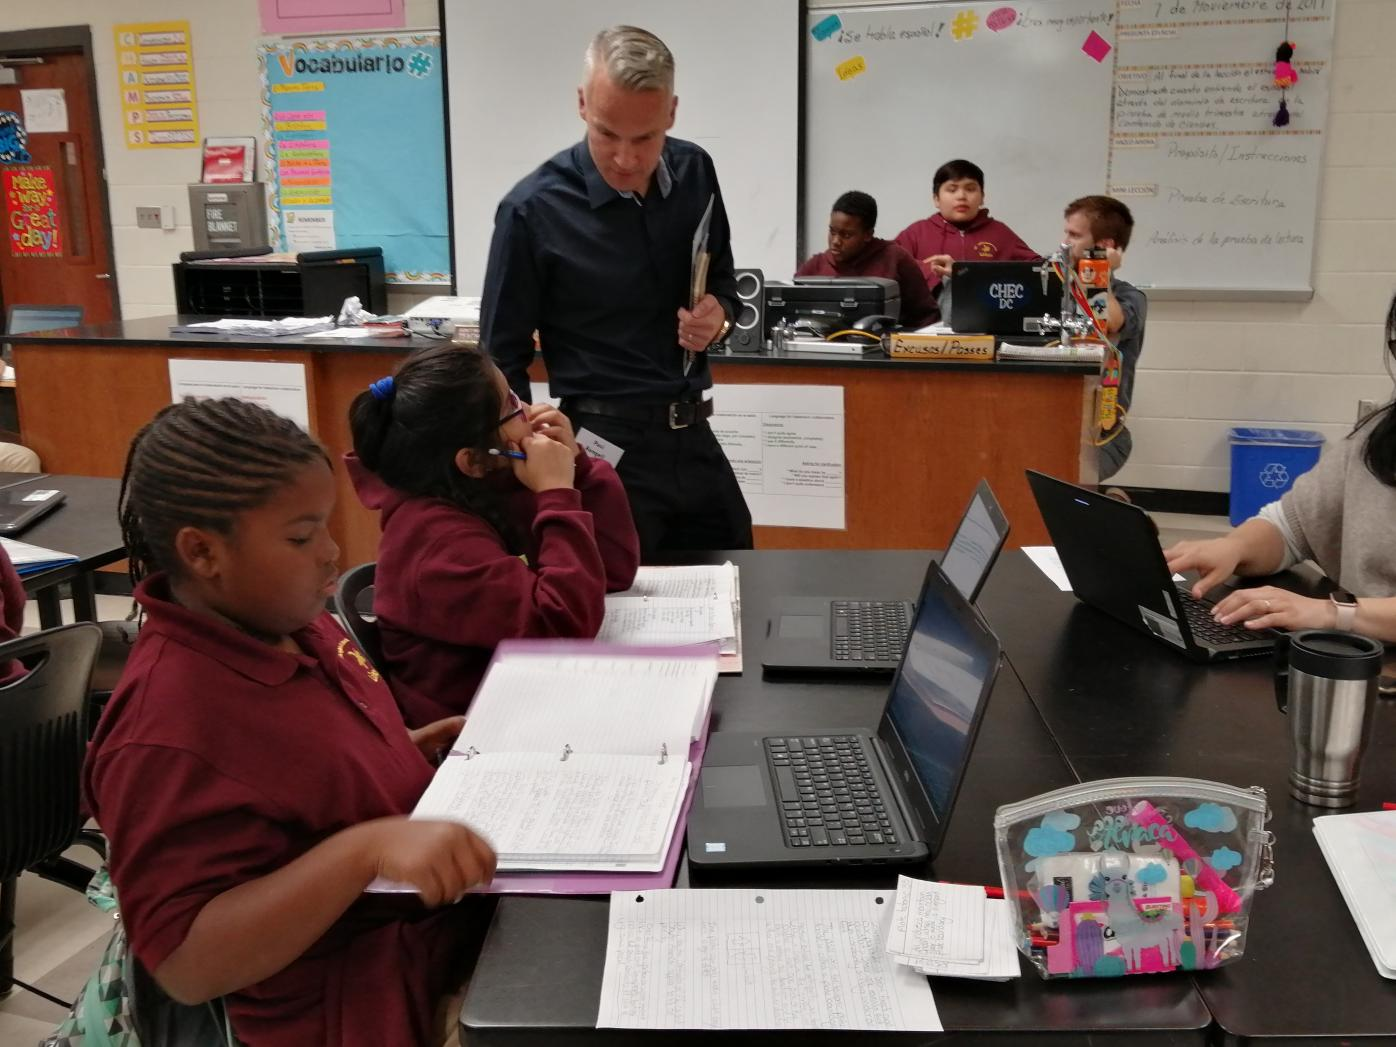 FLGS Travel Grantee Pasi Rangell in a U.S. classroom with students